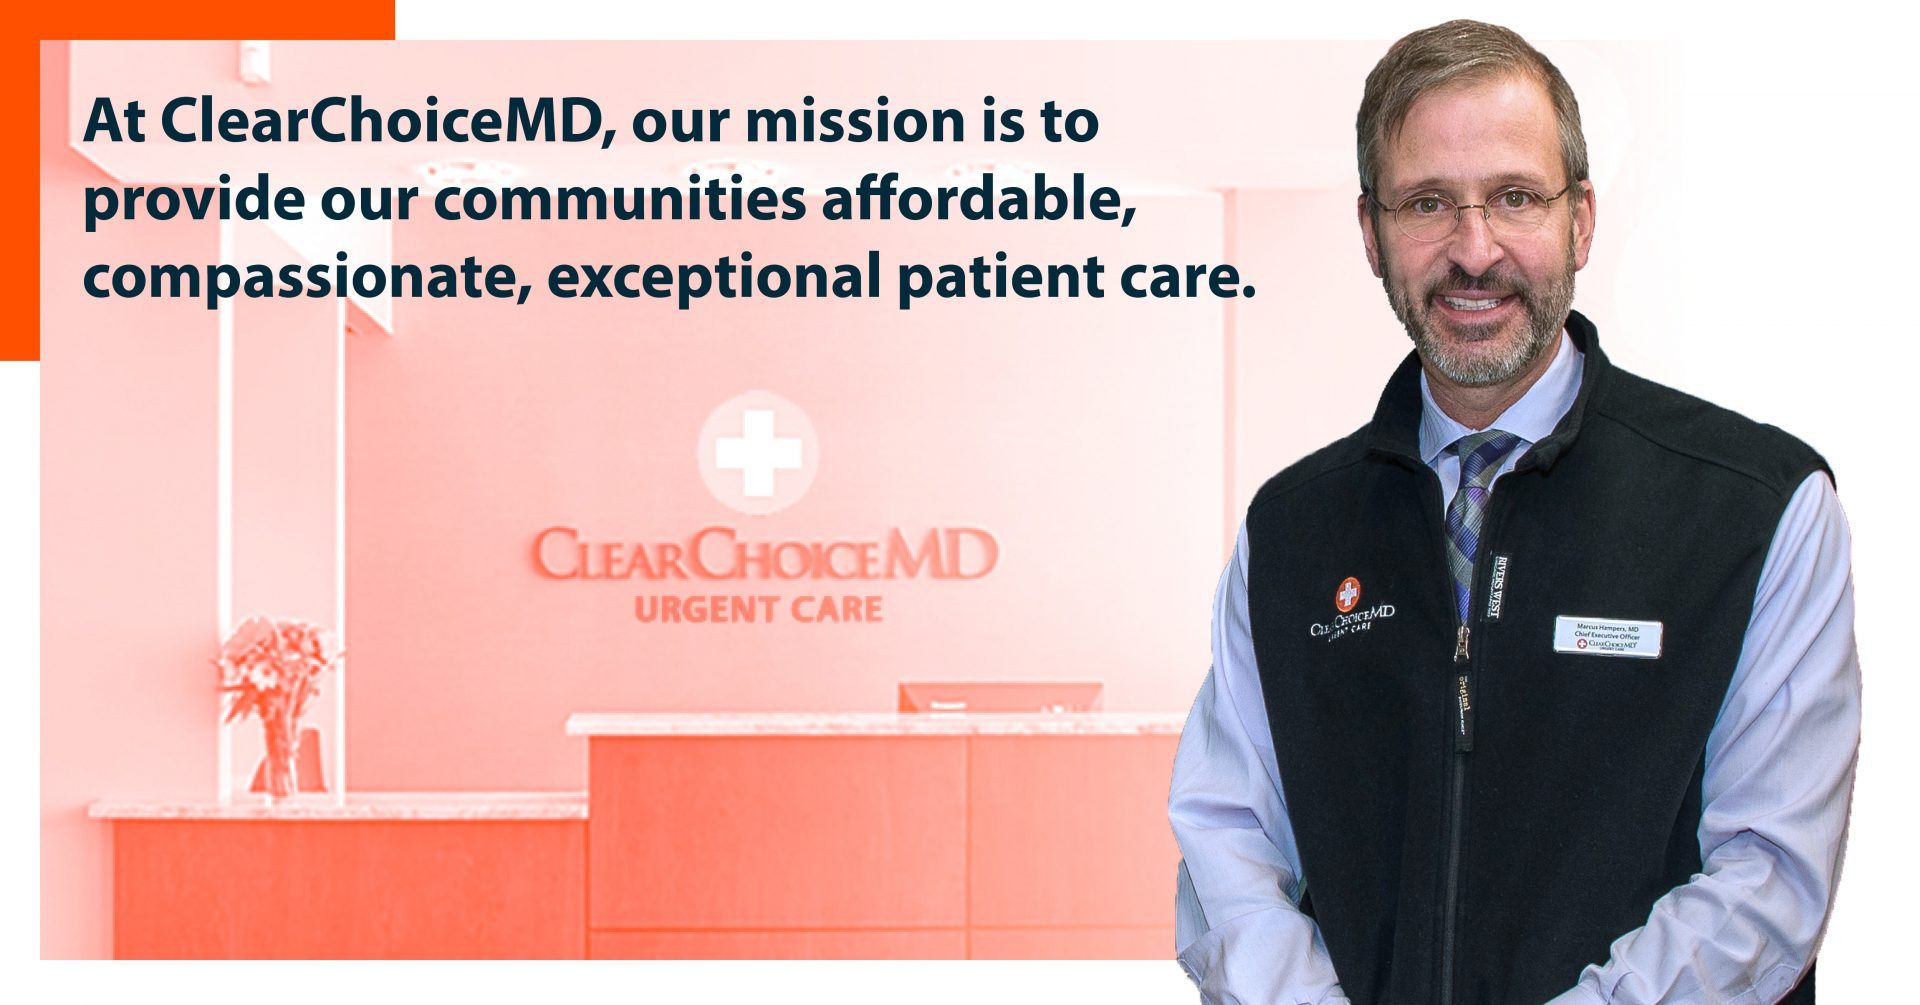 ClearChoiceMD Urgent Care CEO Dr. Marcus Hampers